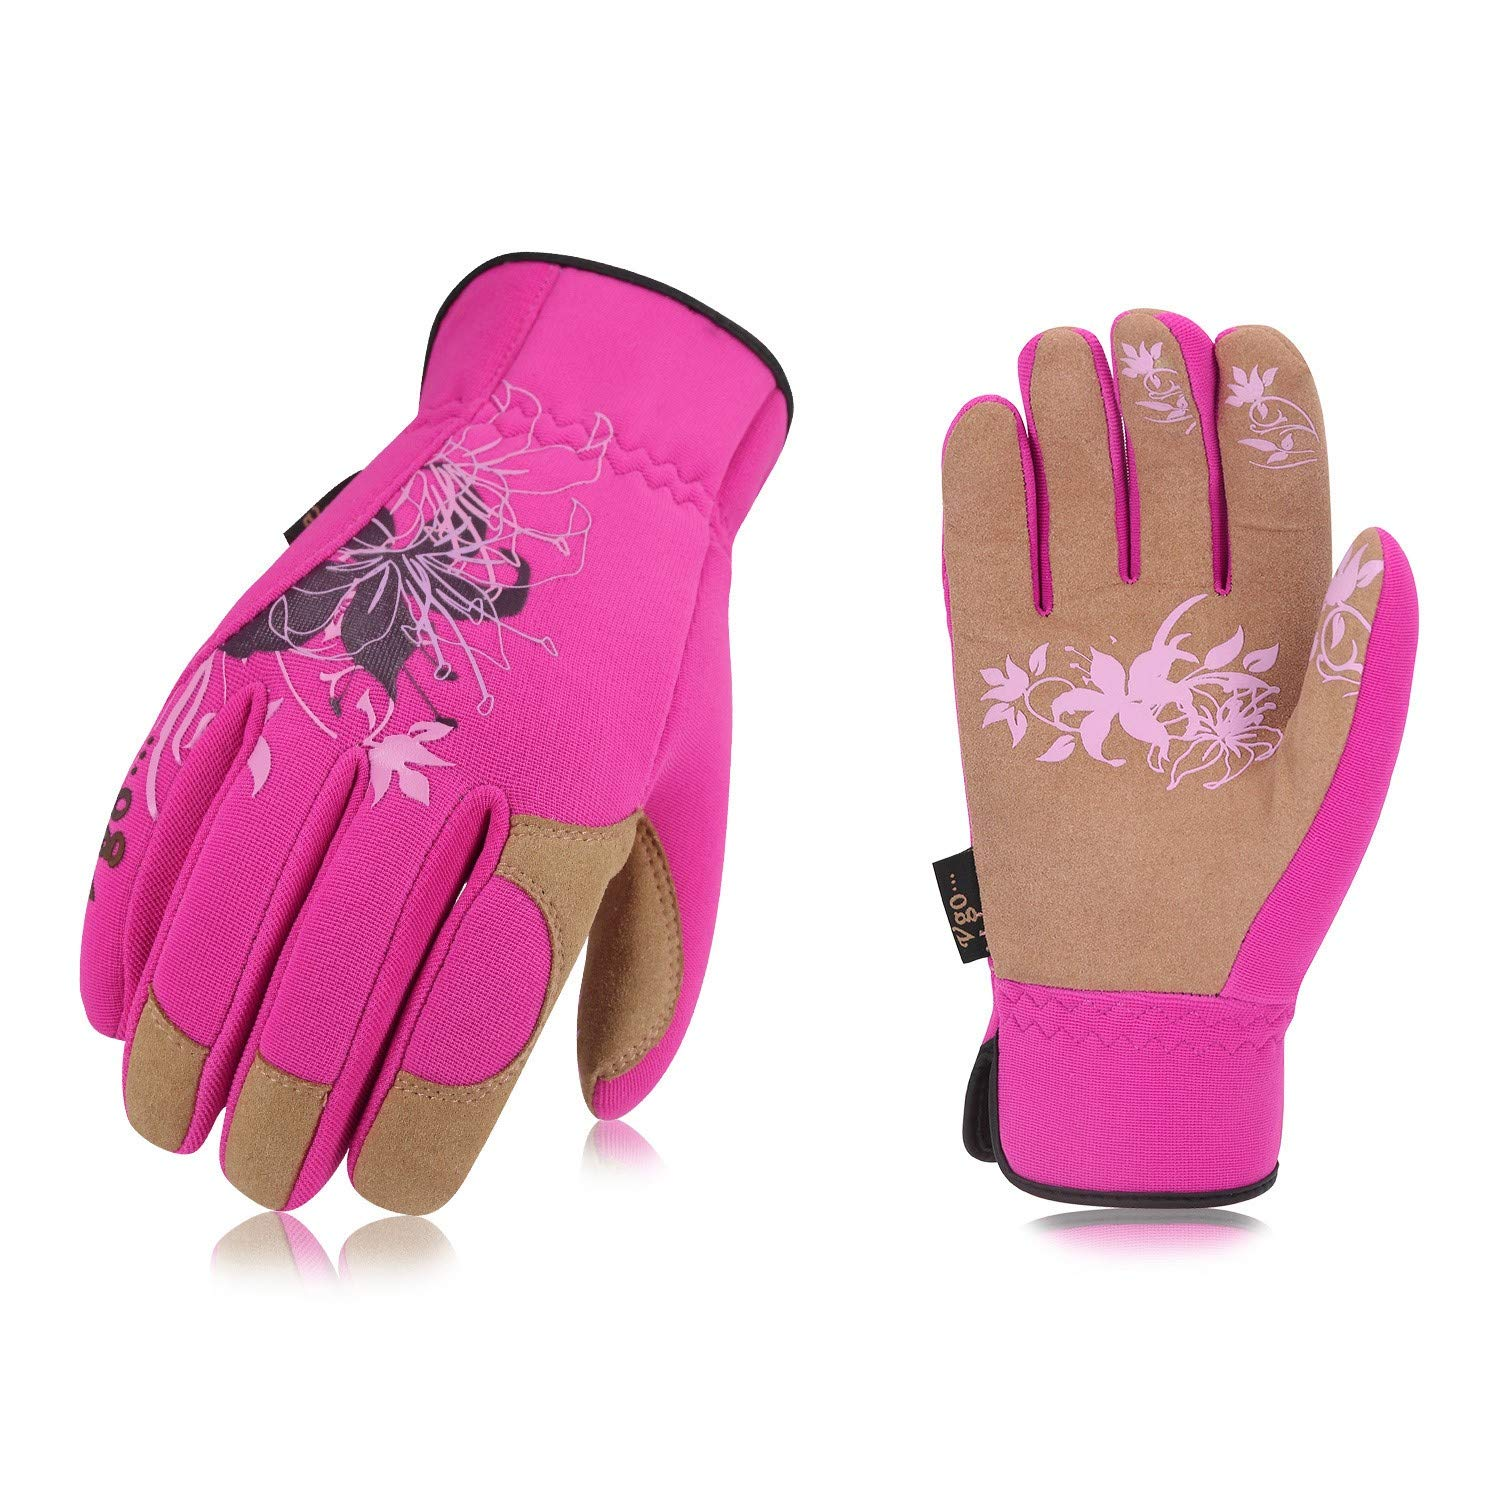 Vgo… Ladies' High Breathability Synthetic Leather Gardening Gloves(Size S/M/L) (Red)